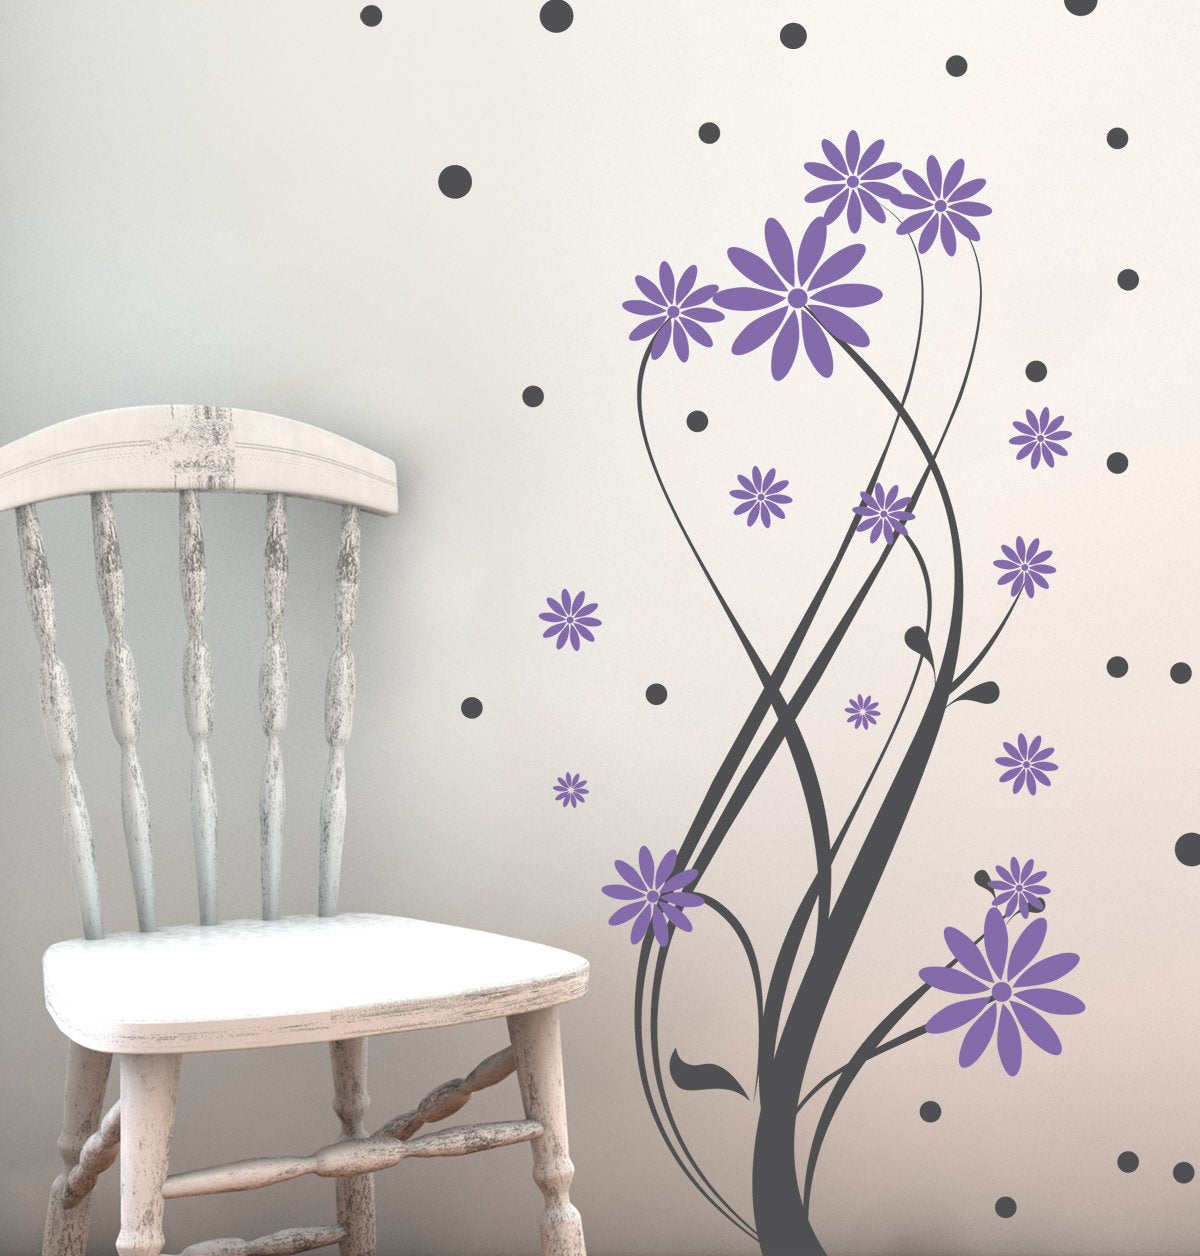 Intertwined Flower Vine Kids Wall Decal